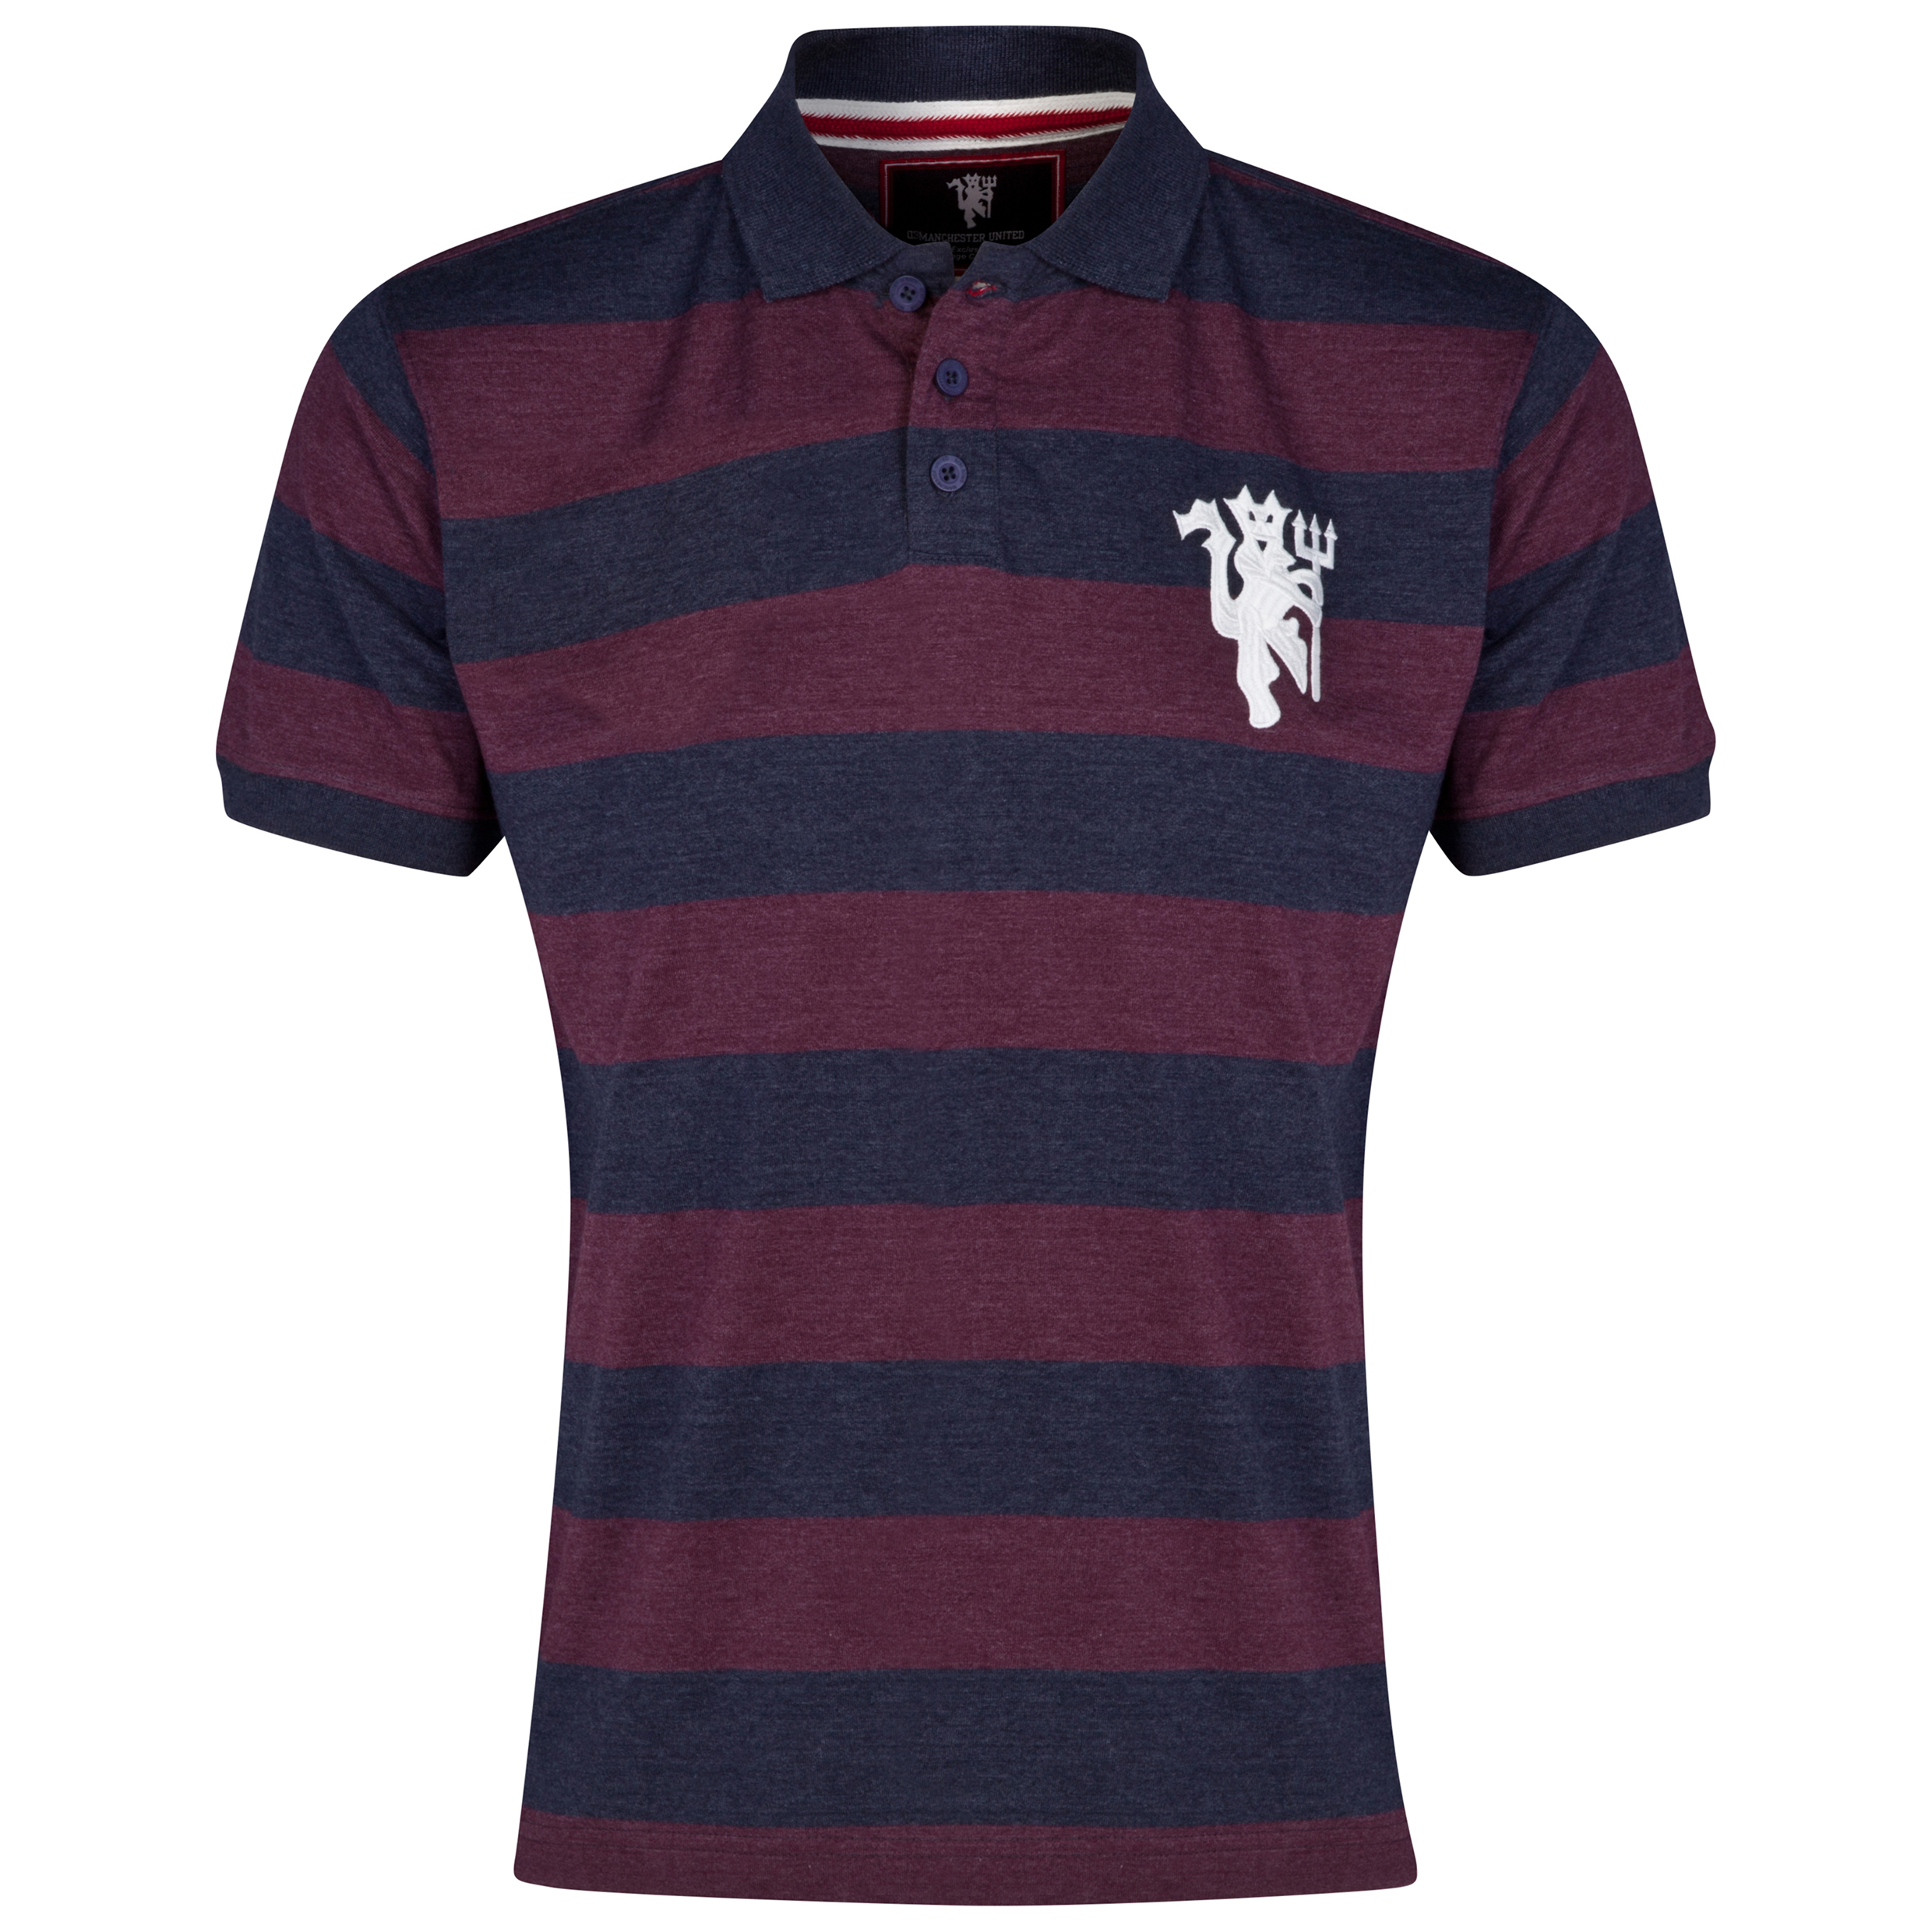 Manchester United Heritage Striped Polo Shirt - Heather Navy - Mens